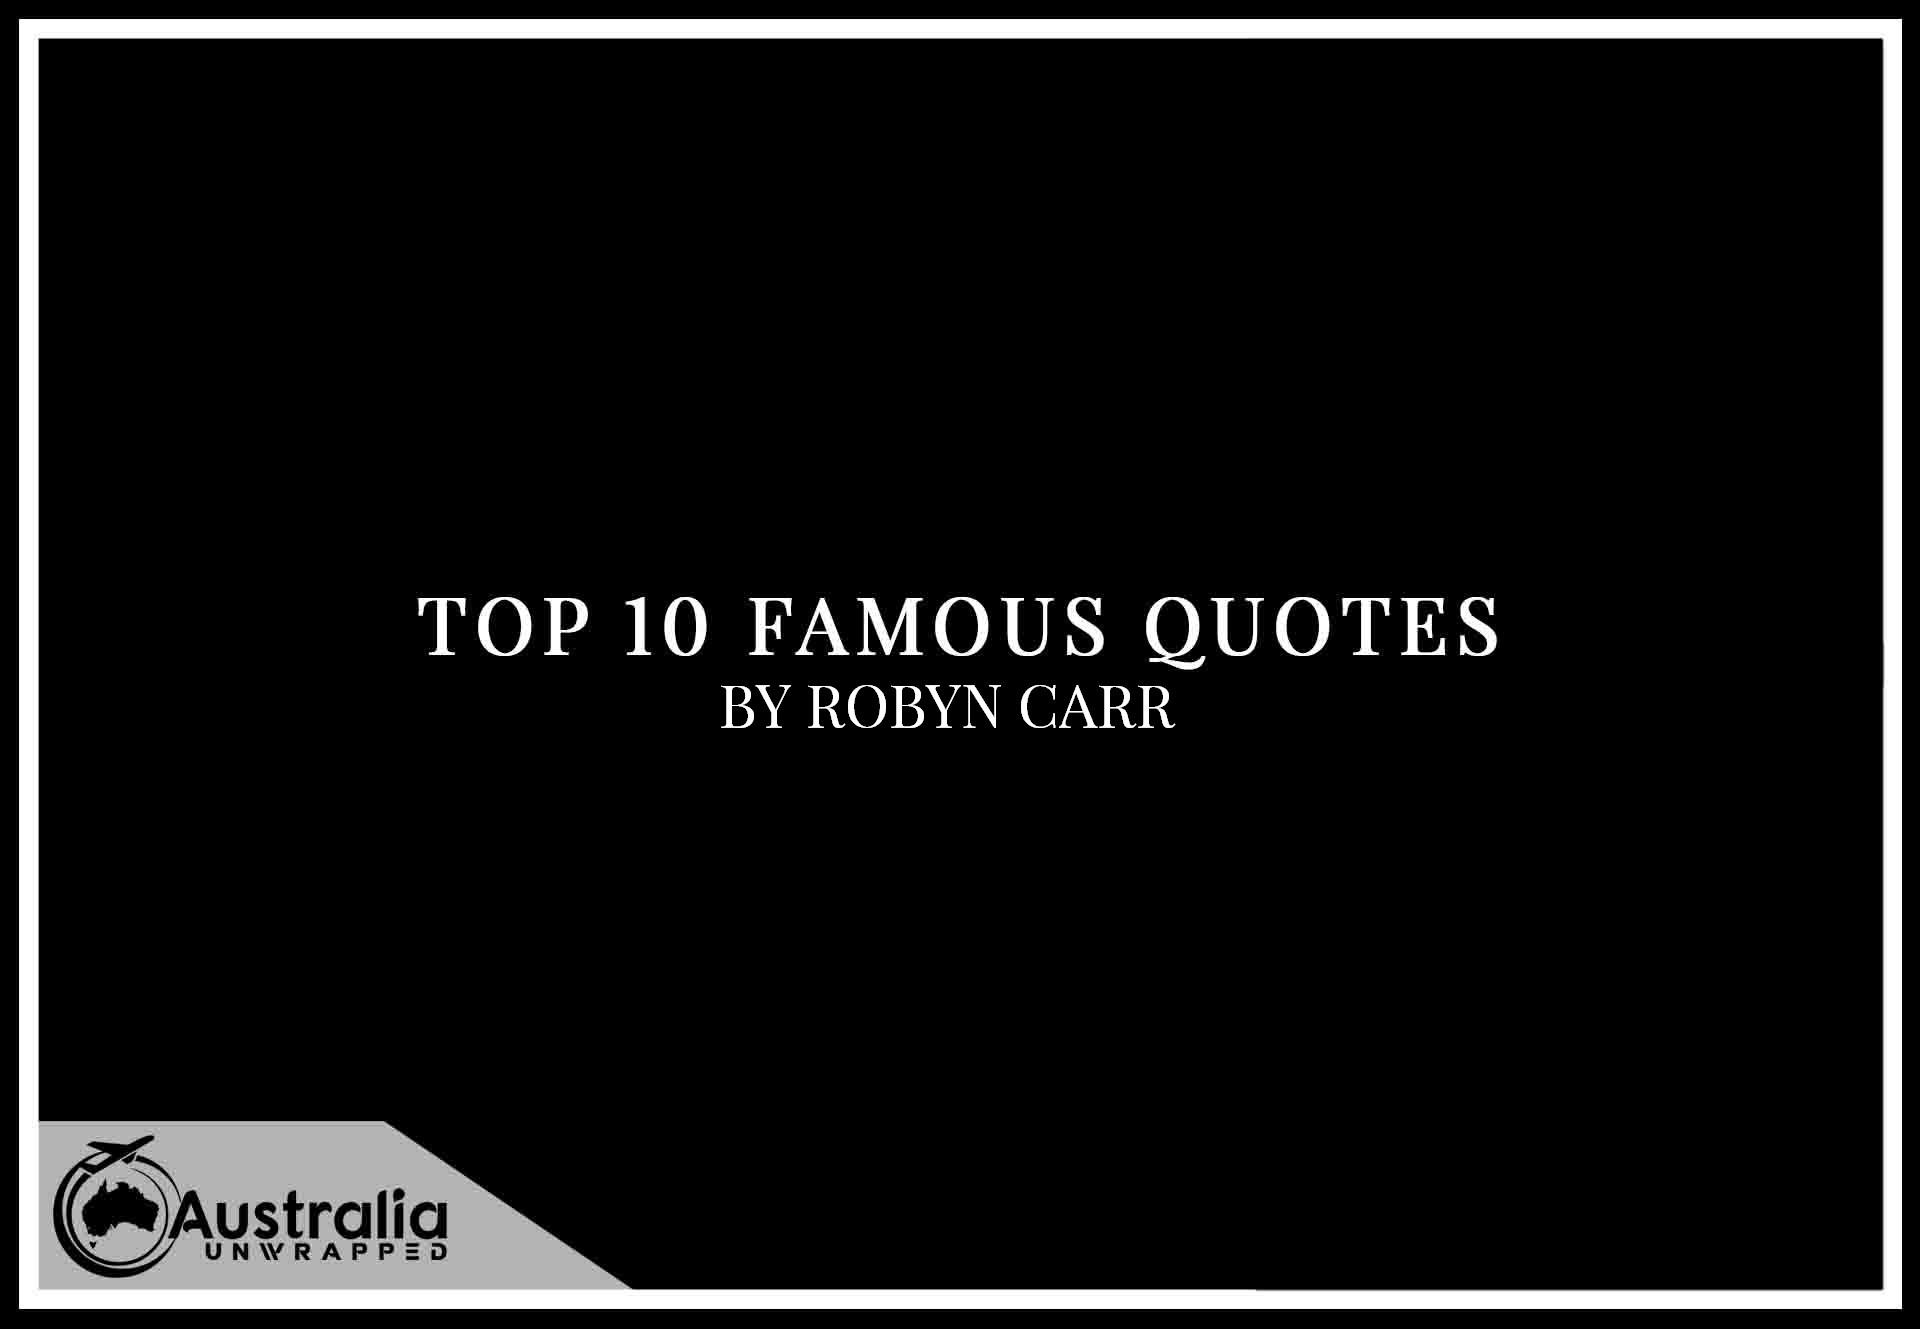 Top 10 Famous Quotes by Author Robyn Carr